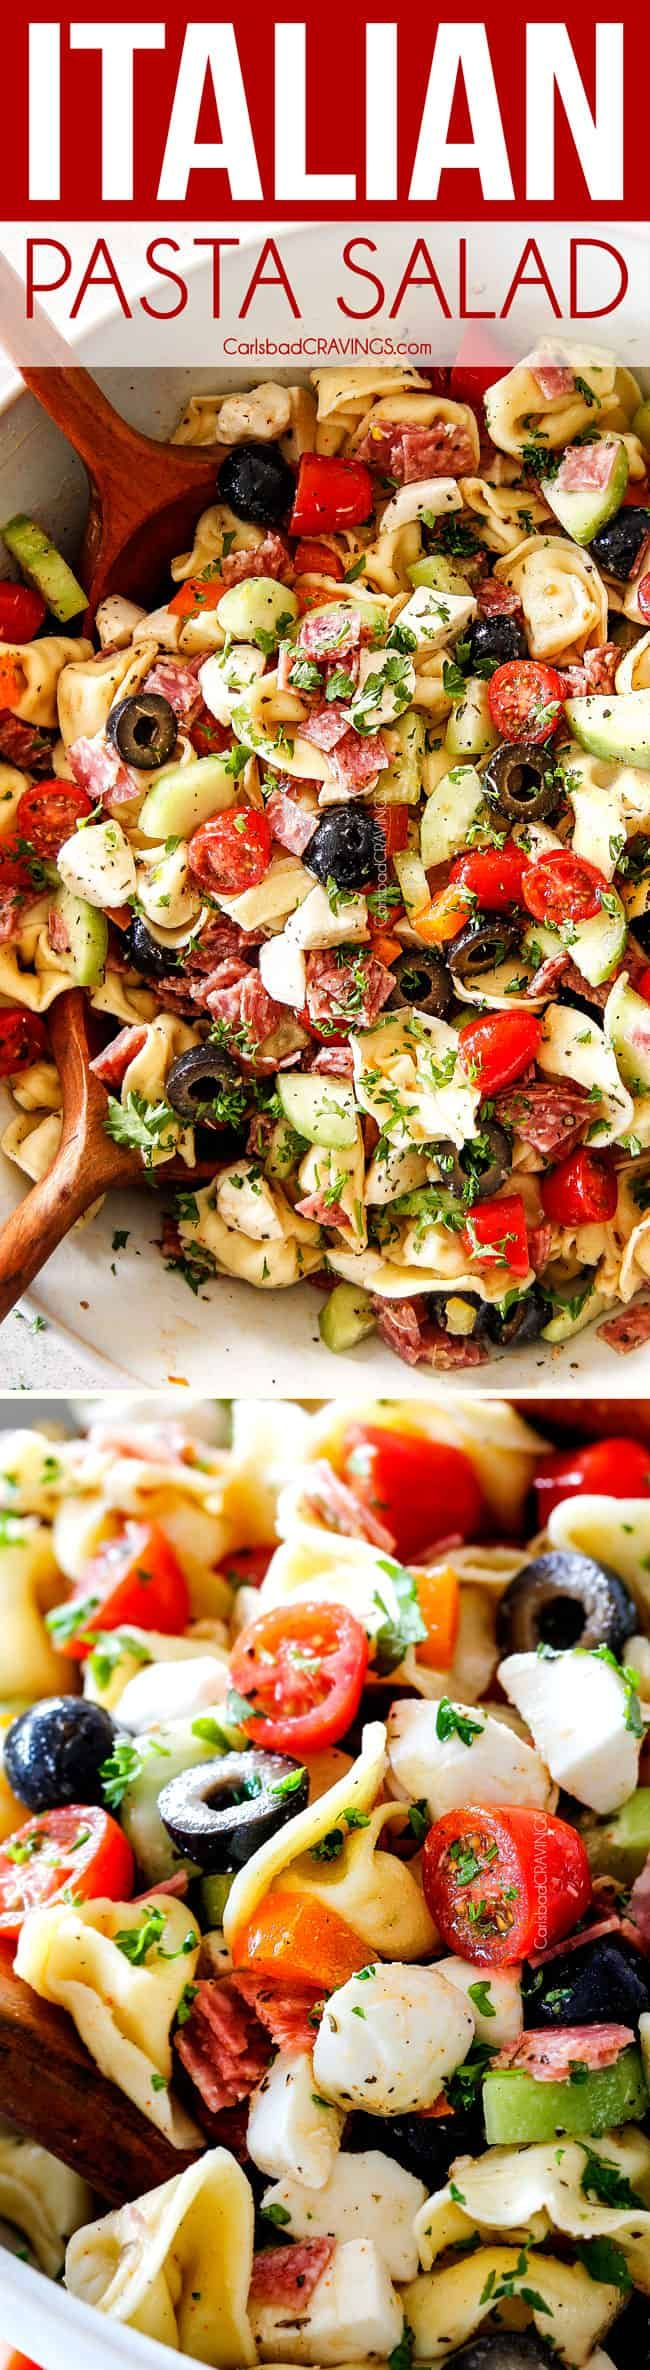 Italian Pasta Salad made 10000X better with cheesy tortellini and the BEST Italian Dressing on your table in 25 minutes! #pastasalad #salad #saladrecipe #recipe #tortellini #tortellinisalad #potluck #potlucksalad #siderecipe